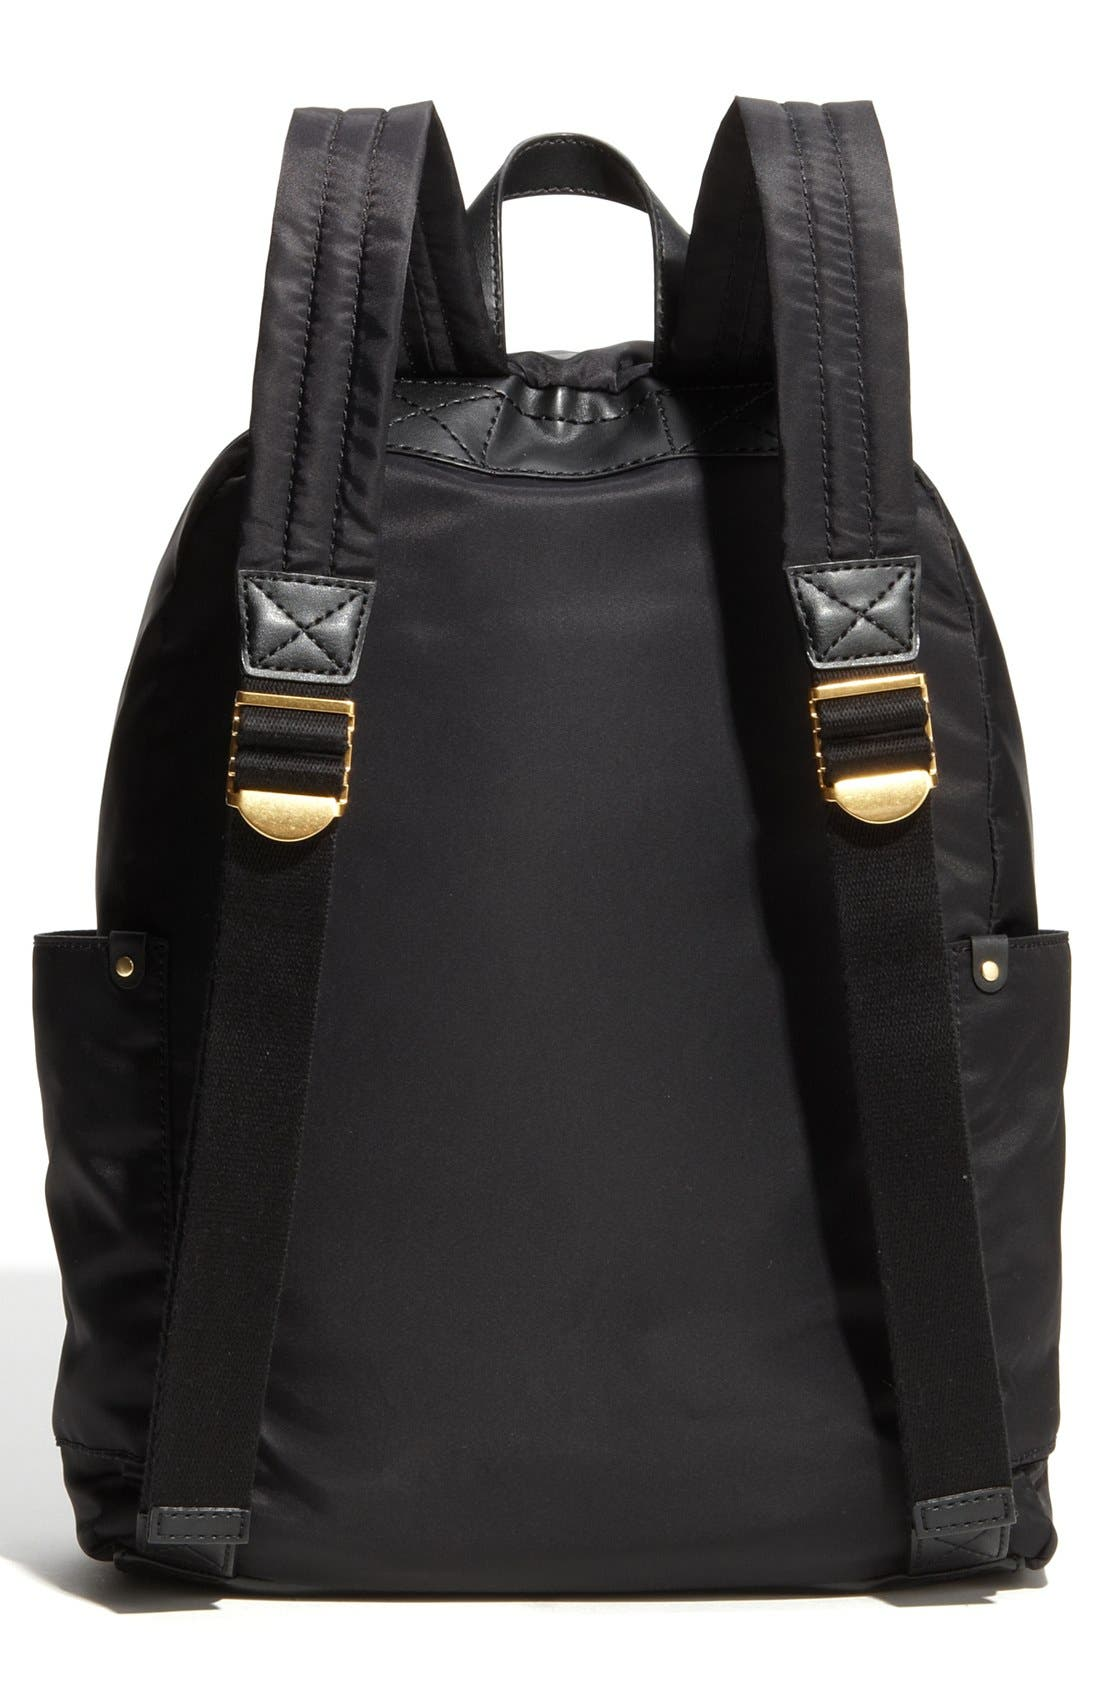 MARC JACOBS,                             MARC BY MARC JACOBS 'Preppy Nylon' Backpack,                             Alternate thumbnail 4, color,                             002